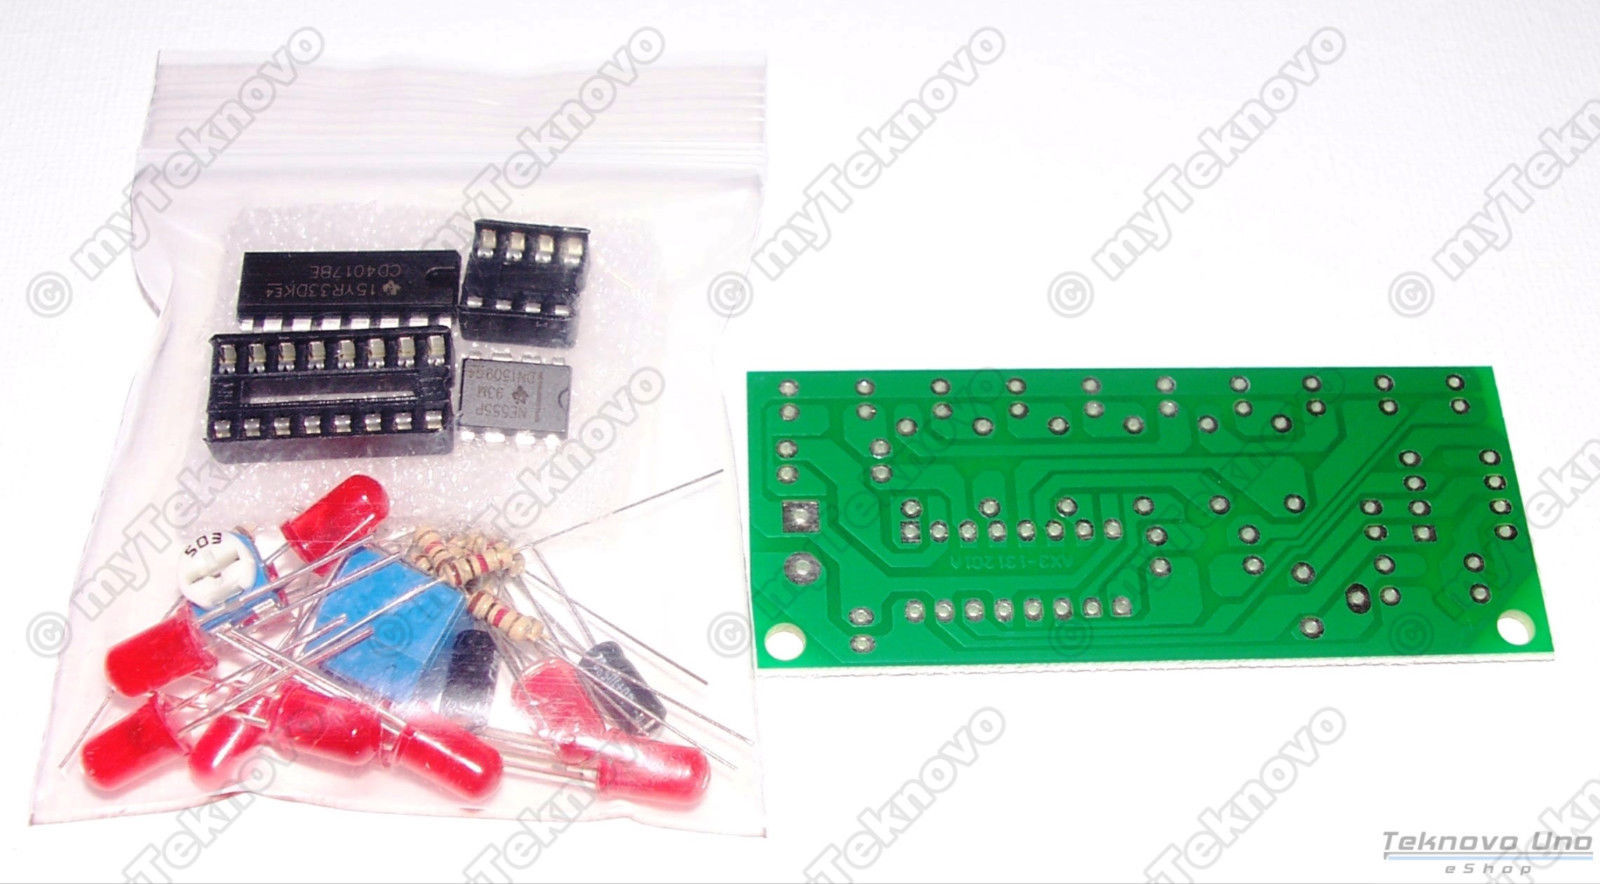 x4 NE555 & CD4017 LED Light Scroller / Chaser / Follower / Sequencer DIY KIT USA